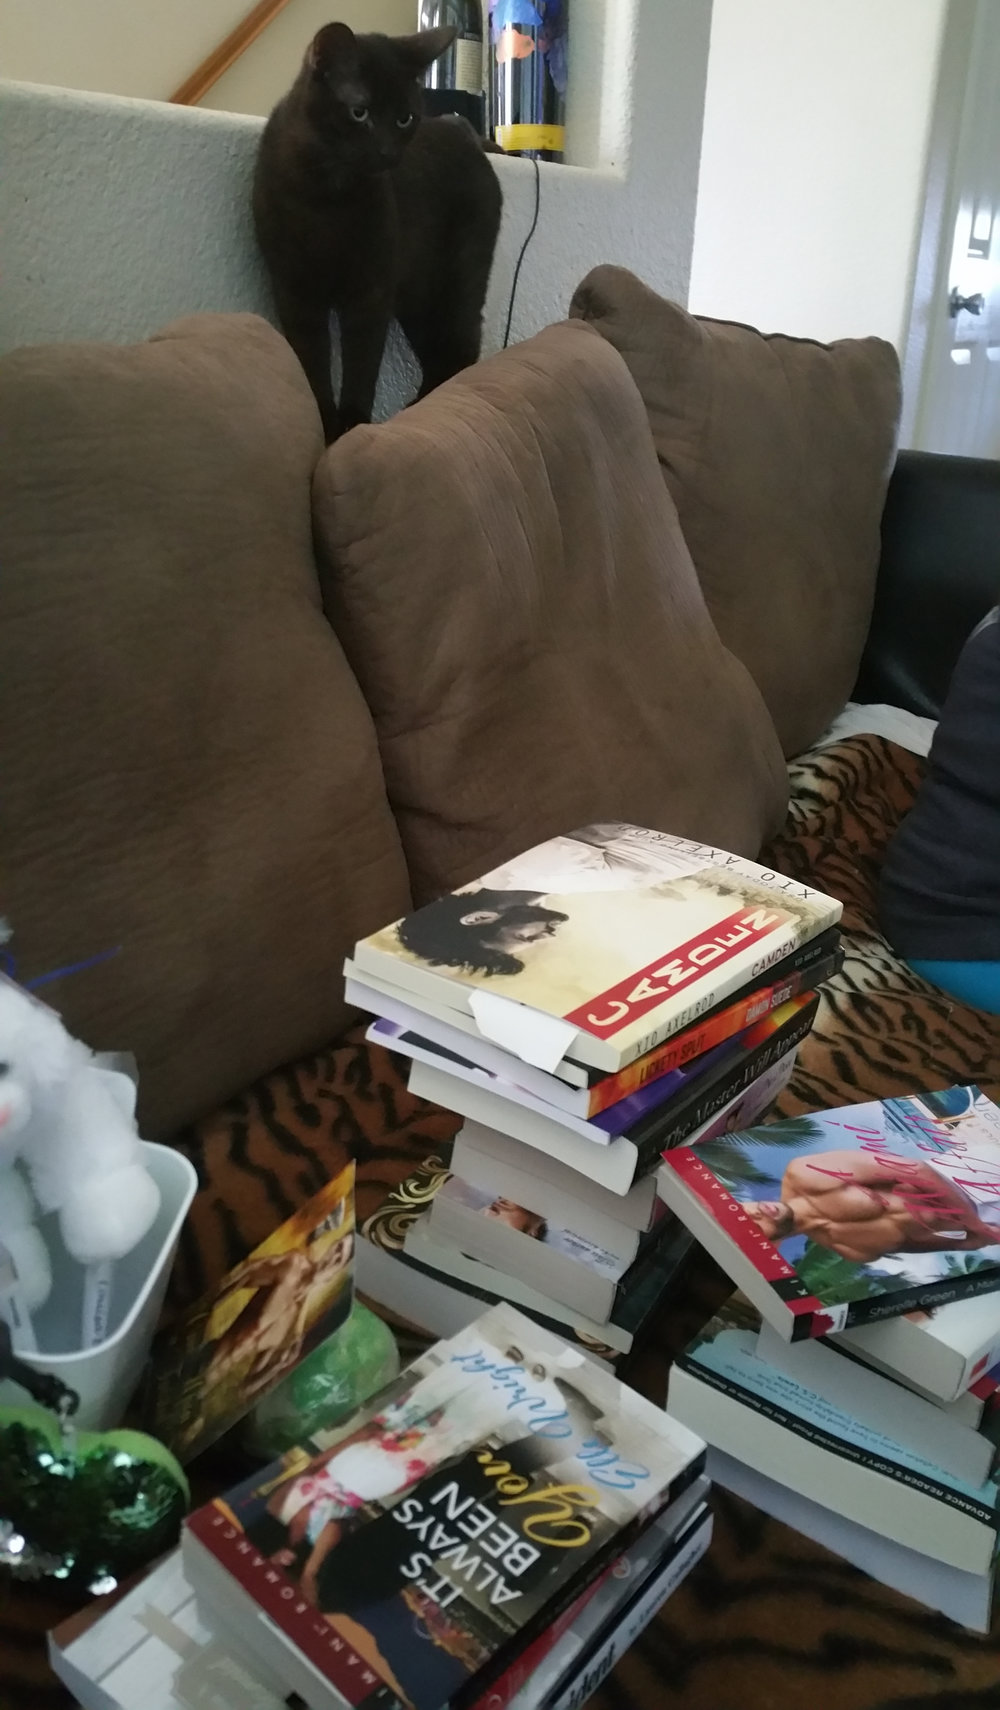 Dresden wants to know WTF happened to his nap spot and who dared put all books there!